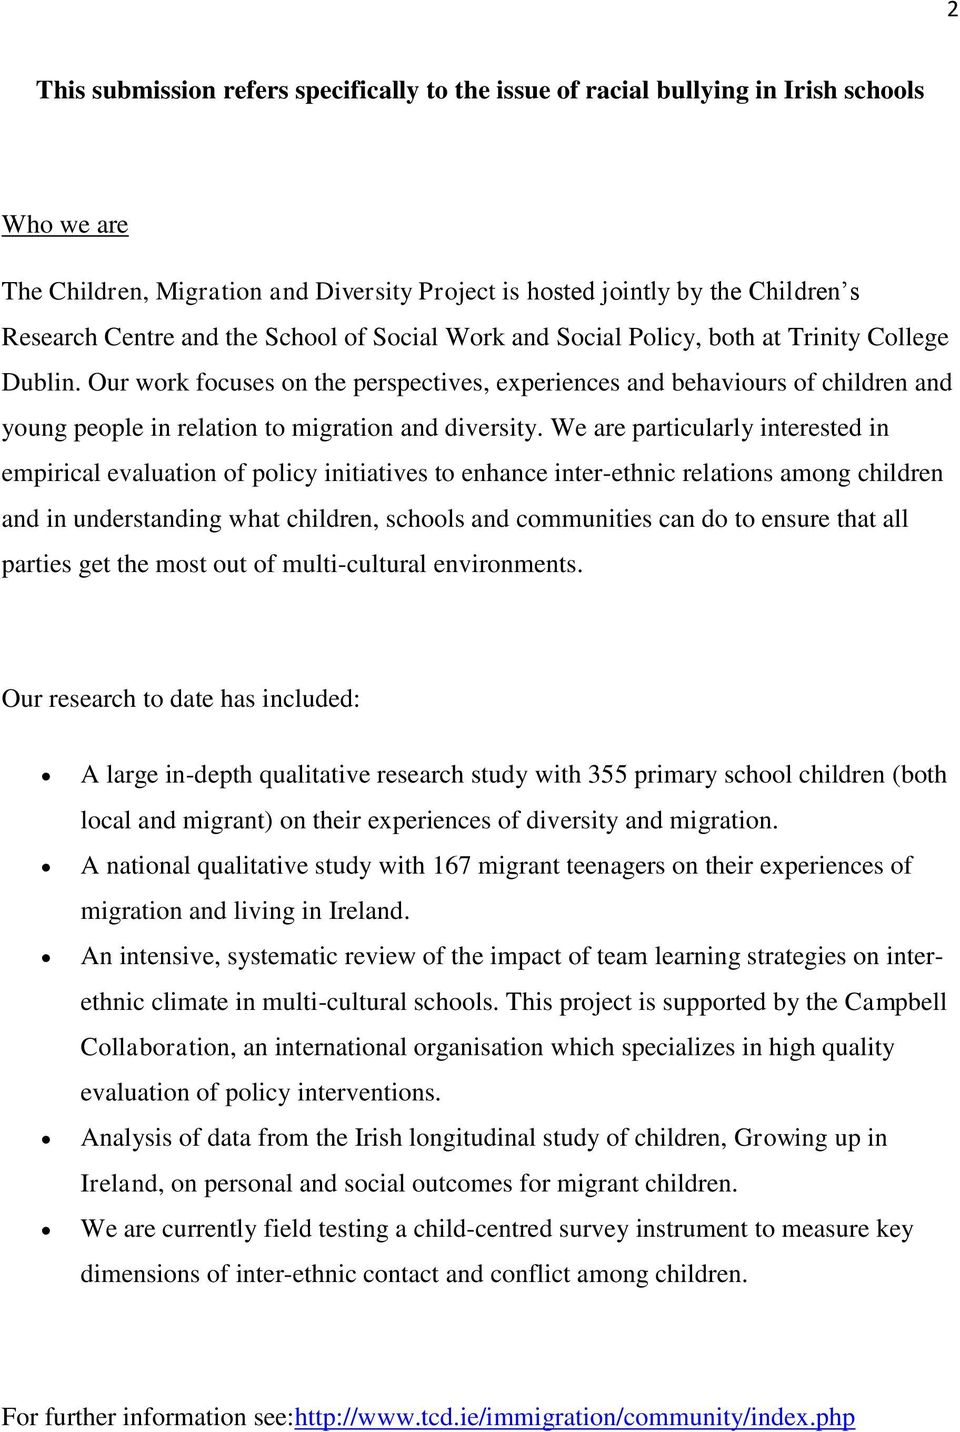 Our work focuses on the perspectives, experiences and behaviours of children and young people in relation to migration and diversity.